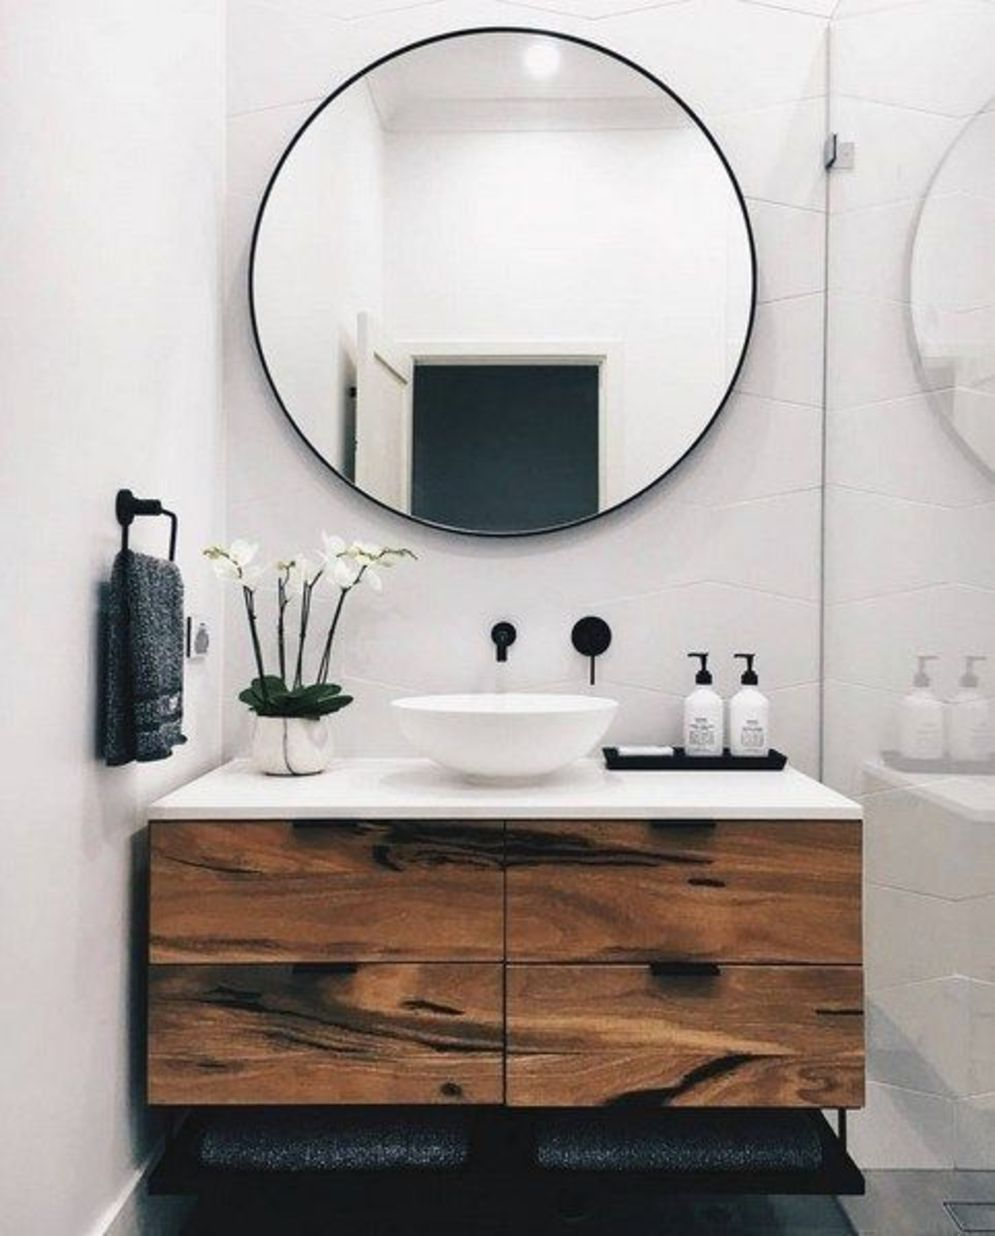 Timeless bathroom designs with wood accents enhancing more natural vibes Image 33